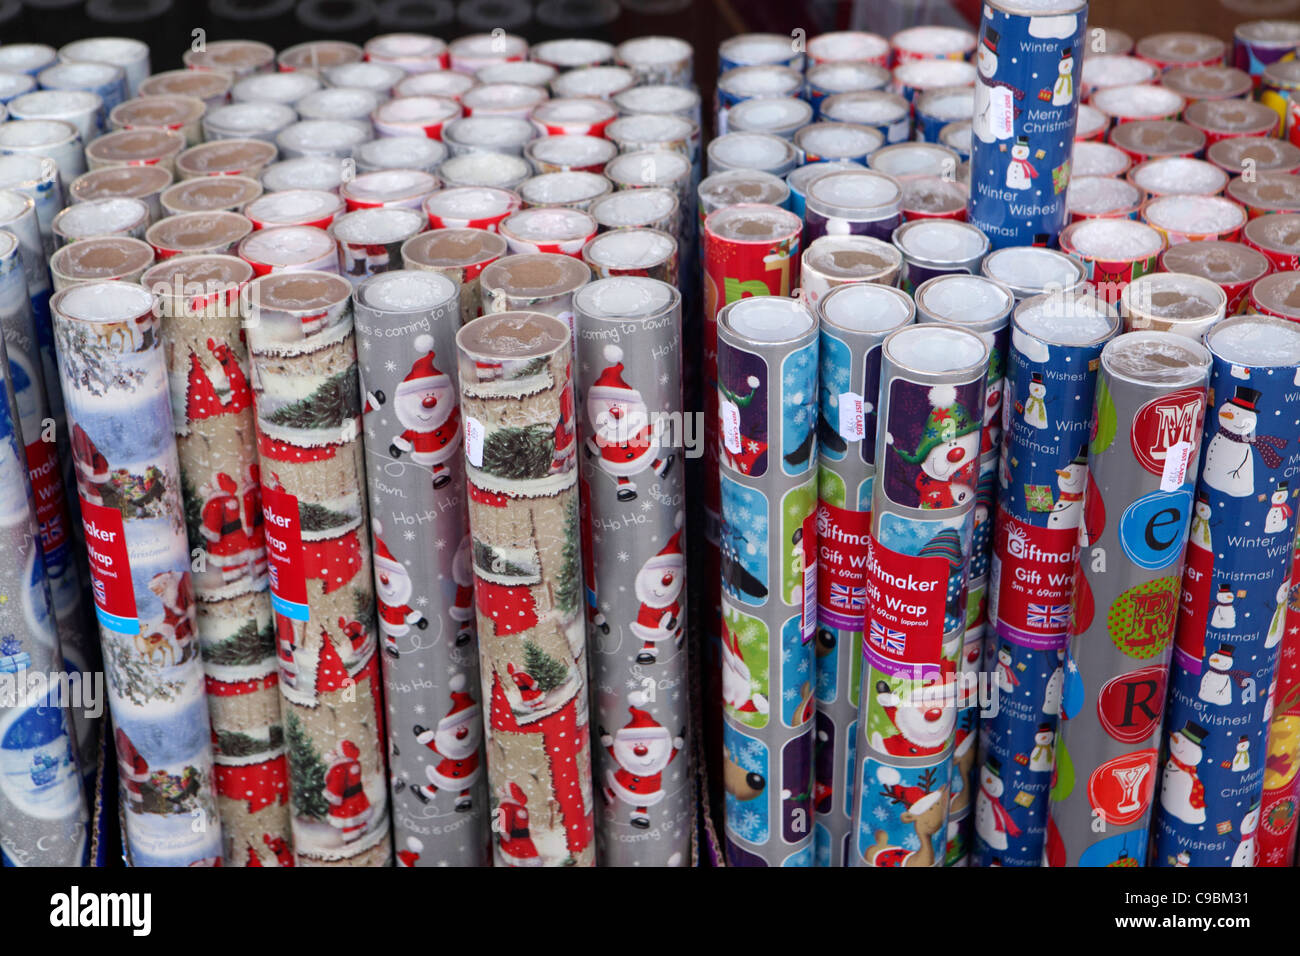 Wrapping Paper Rolls Stock Photos & Wrapping Paper Rolls ...